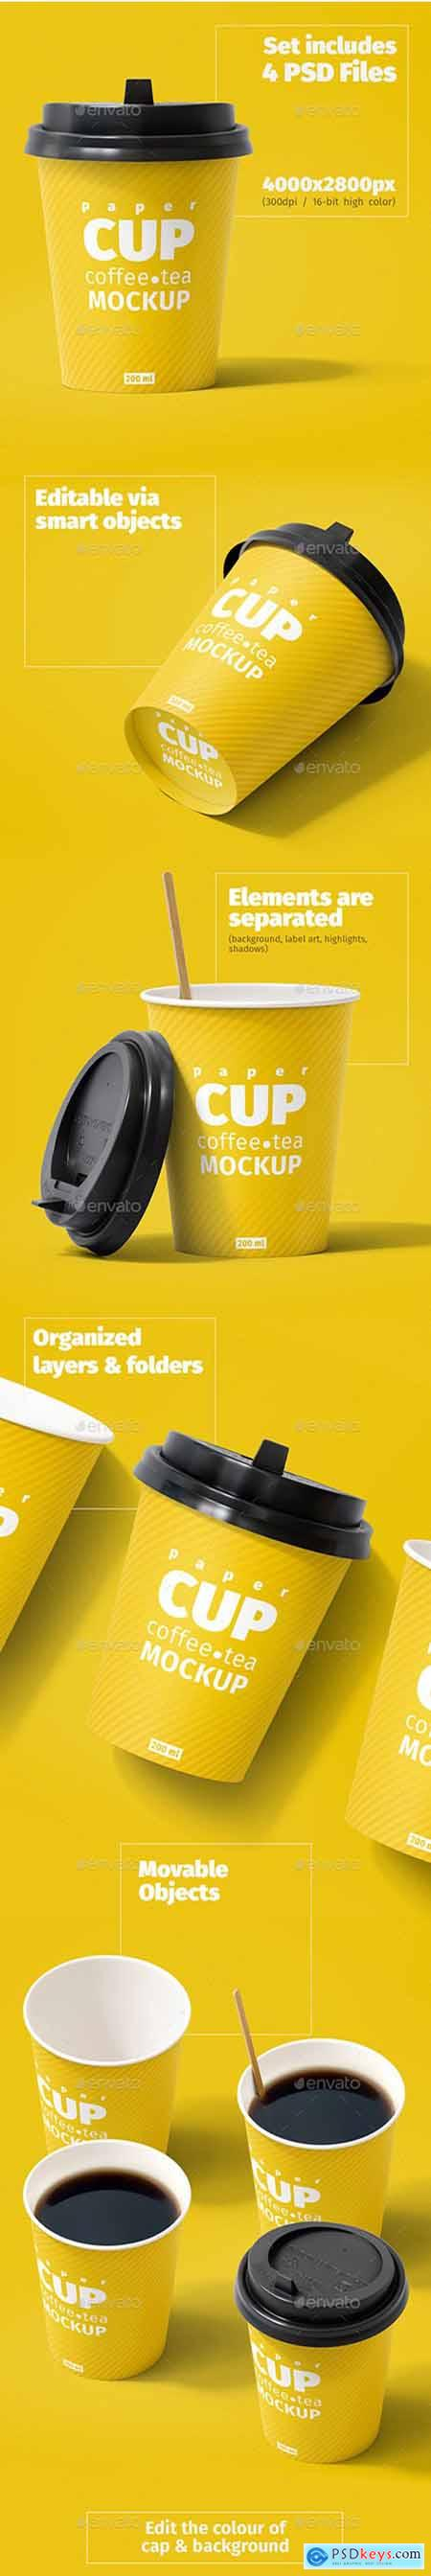 Paper Cup 200ml Mockup 22855393